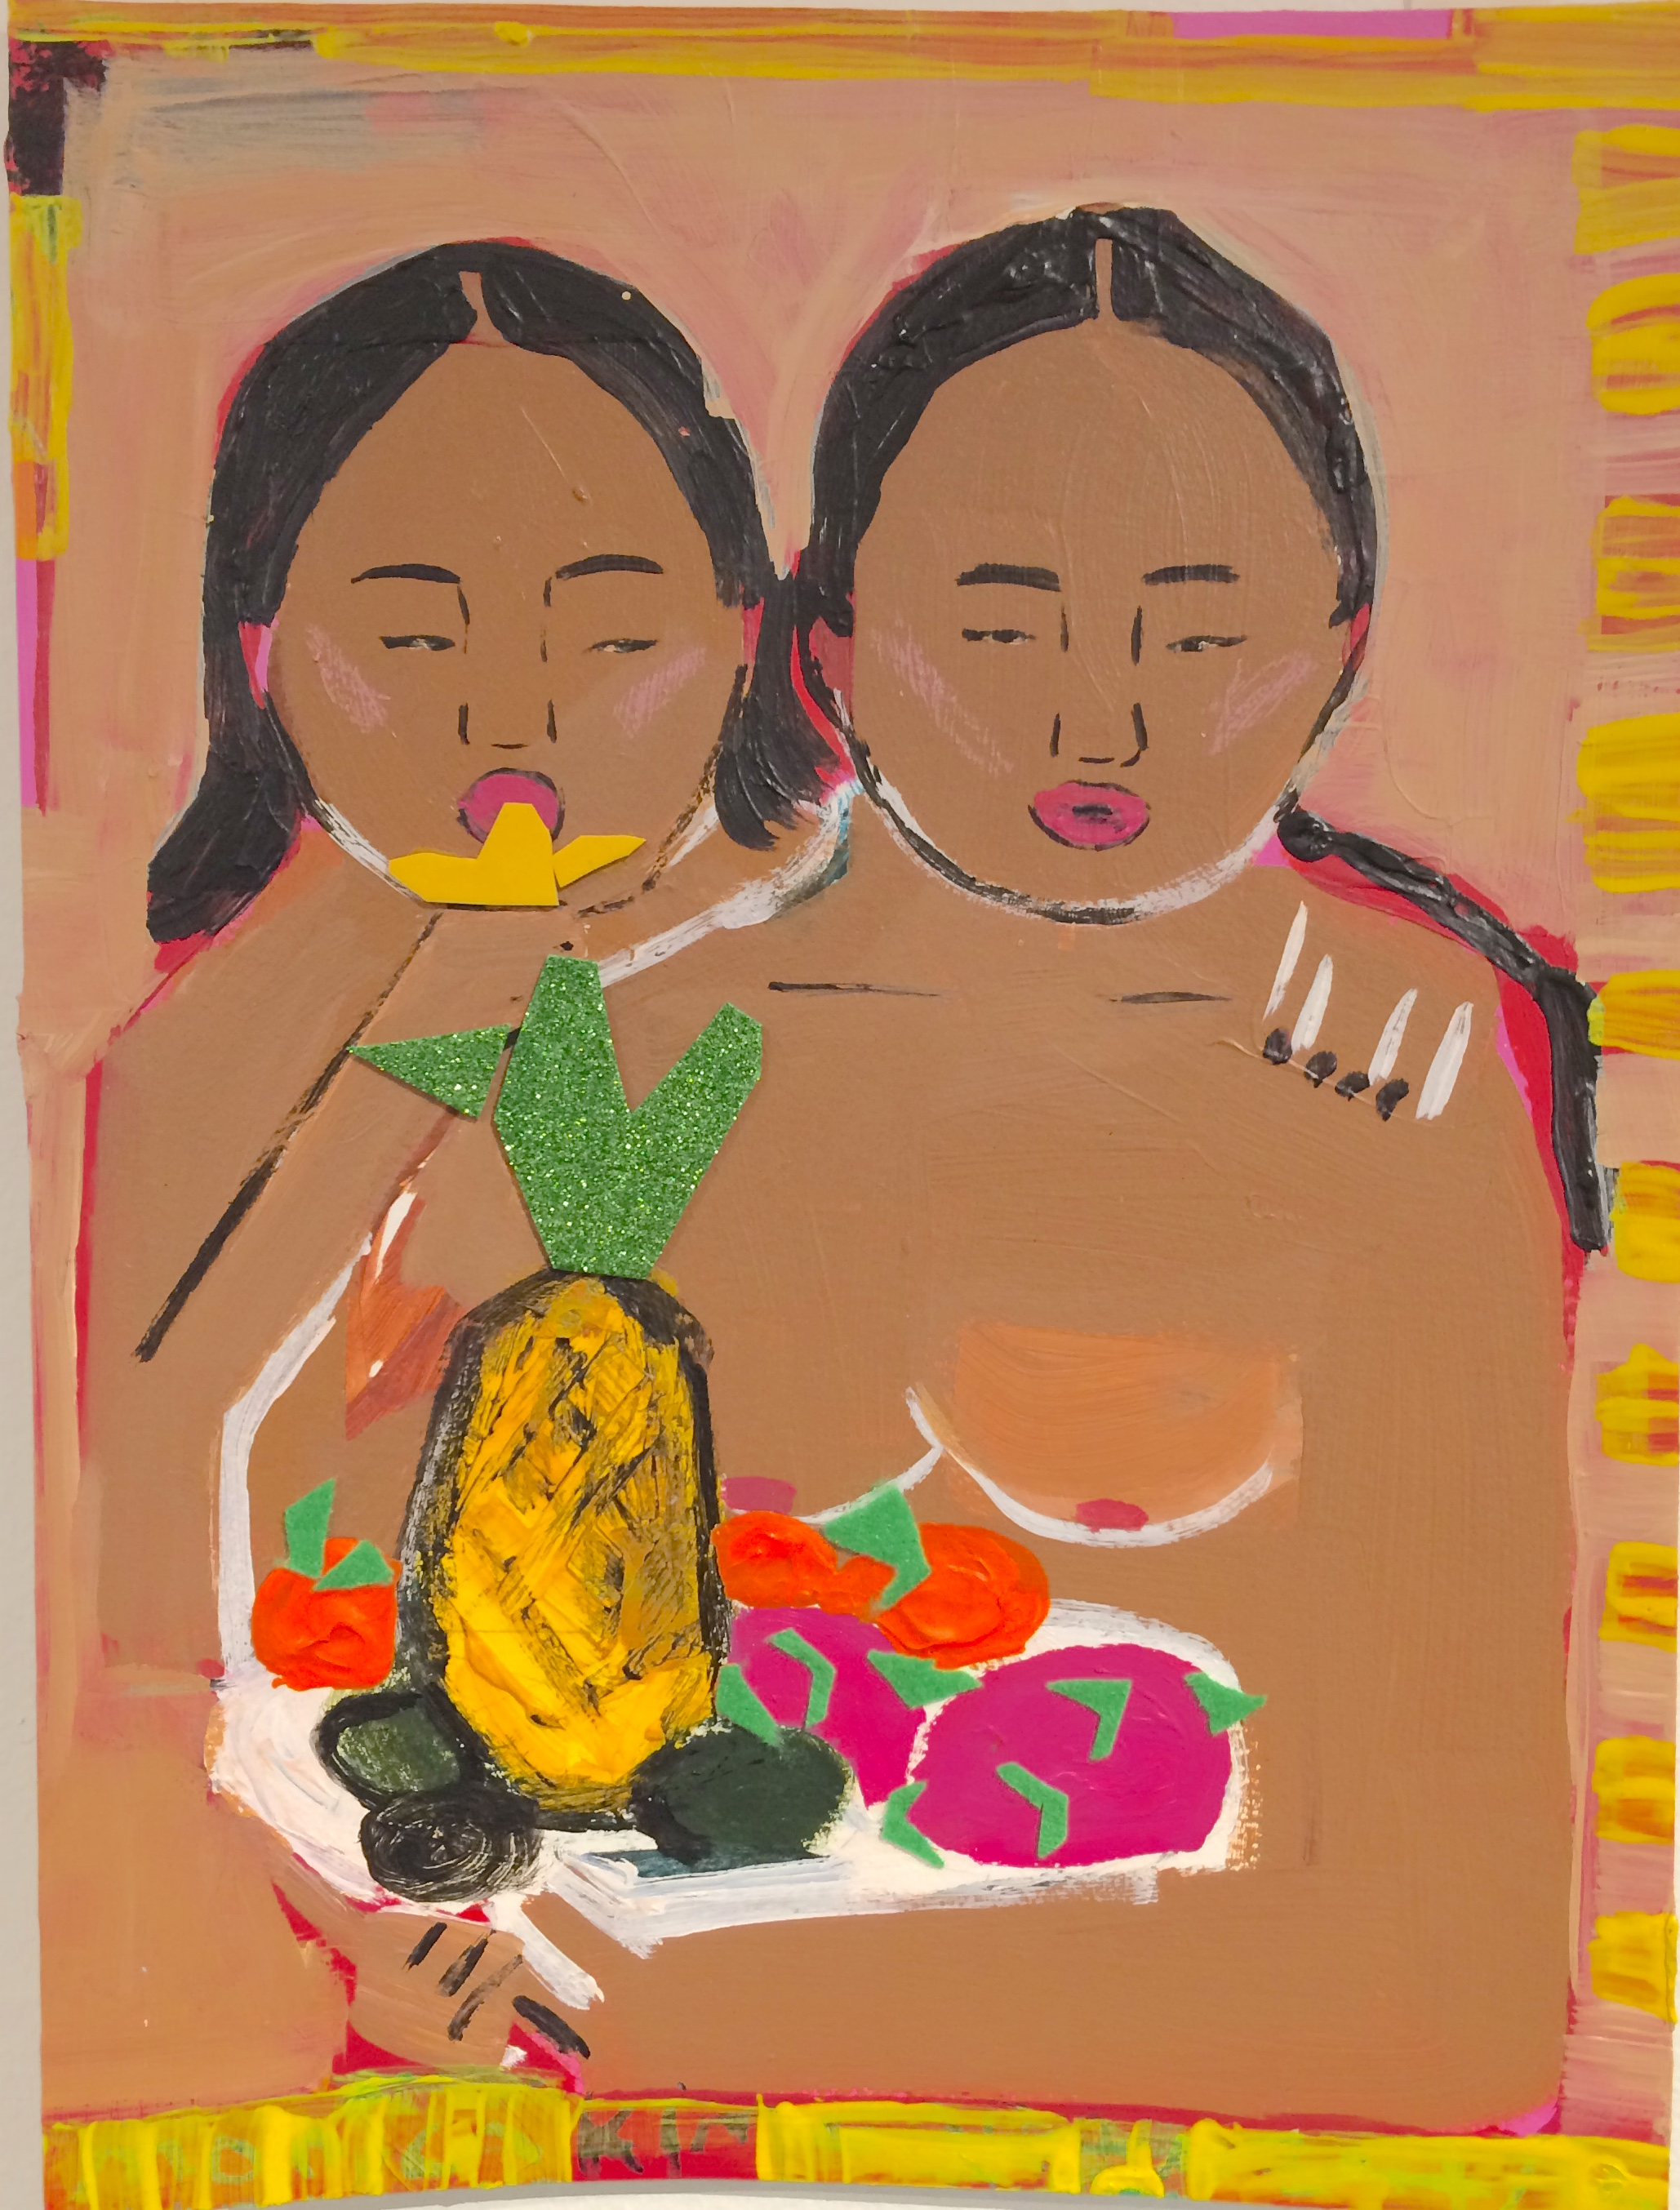 Monica Kim Garza / The Fruiters / 2018 / Acrylic on canvas / 16 x 12 inches